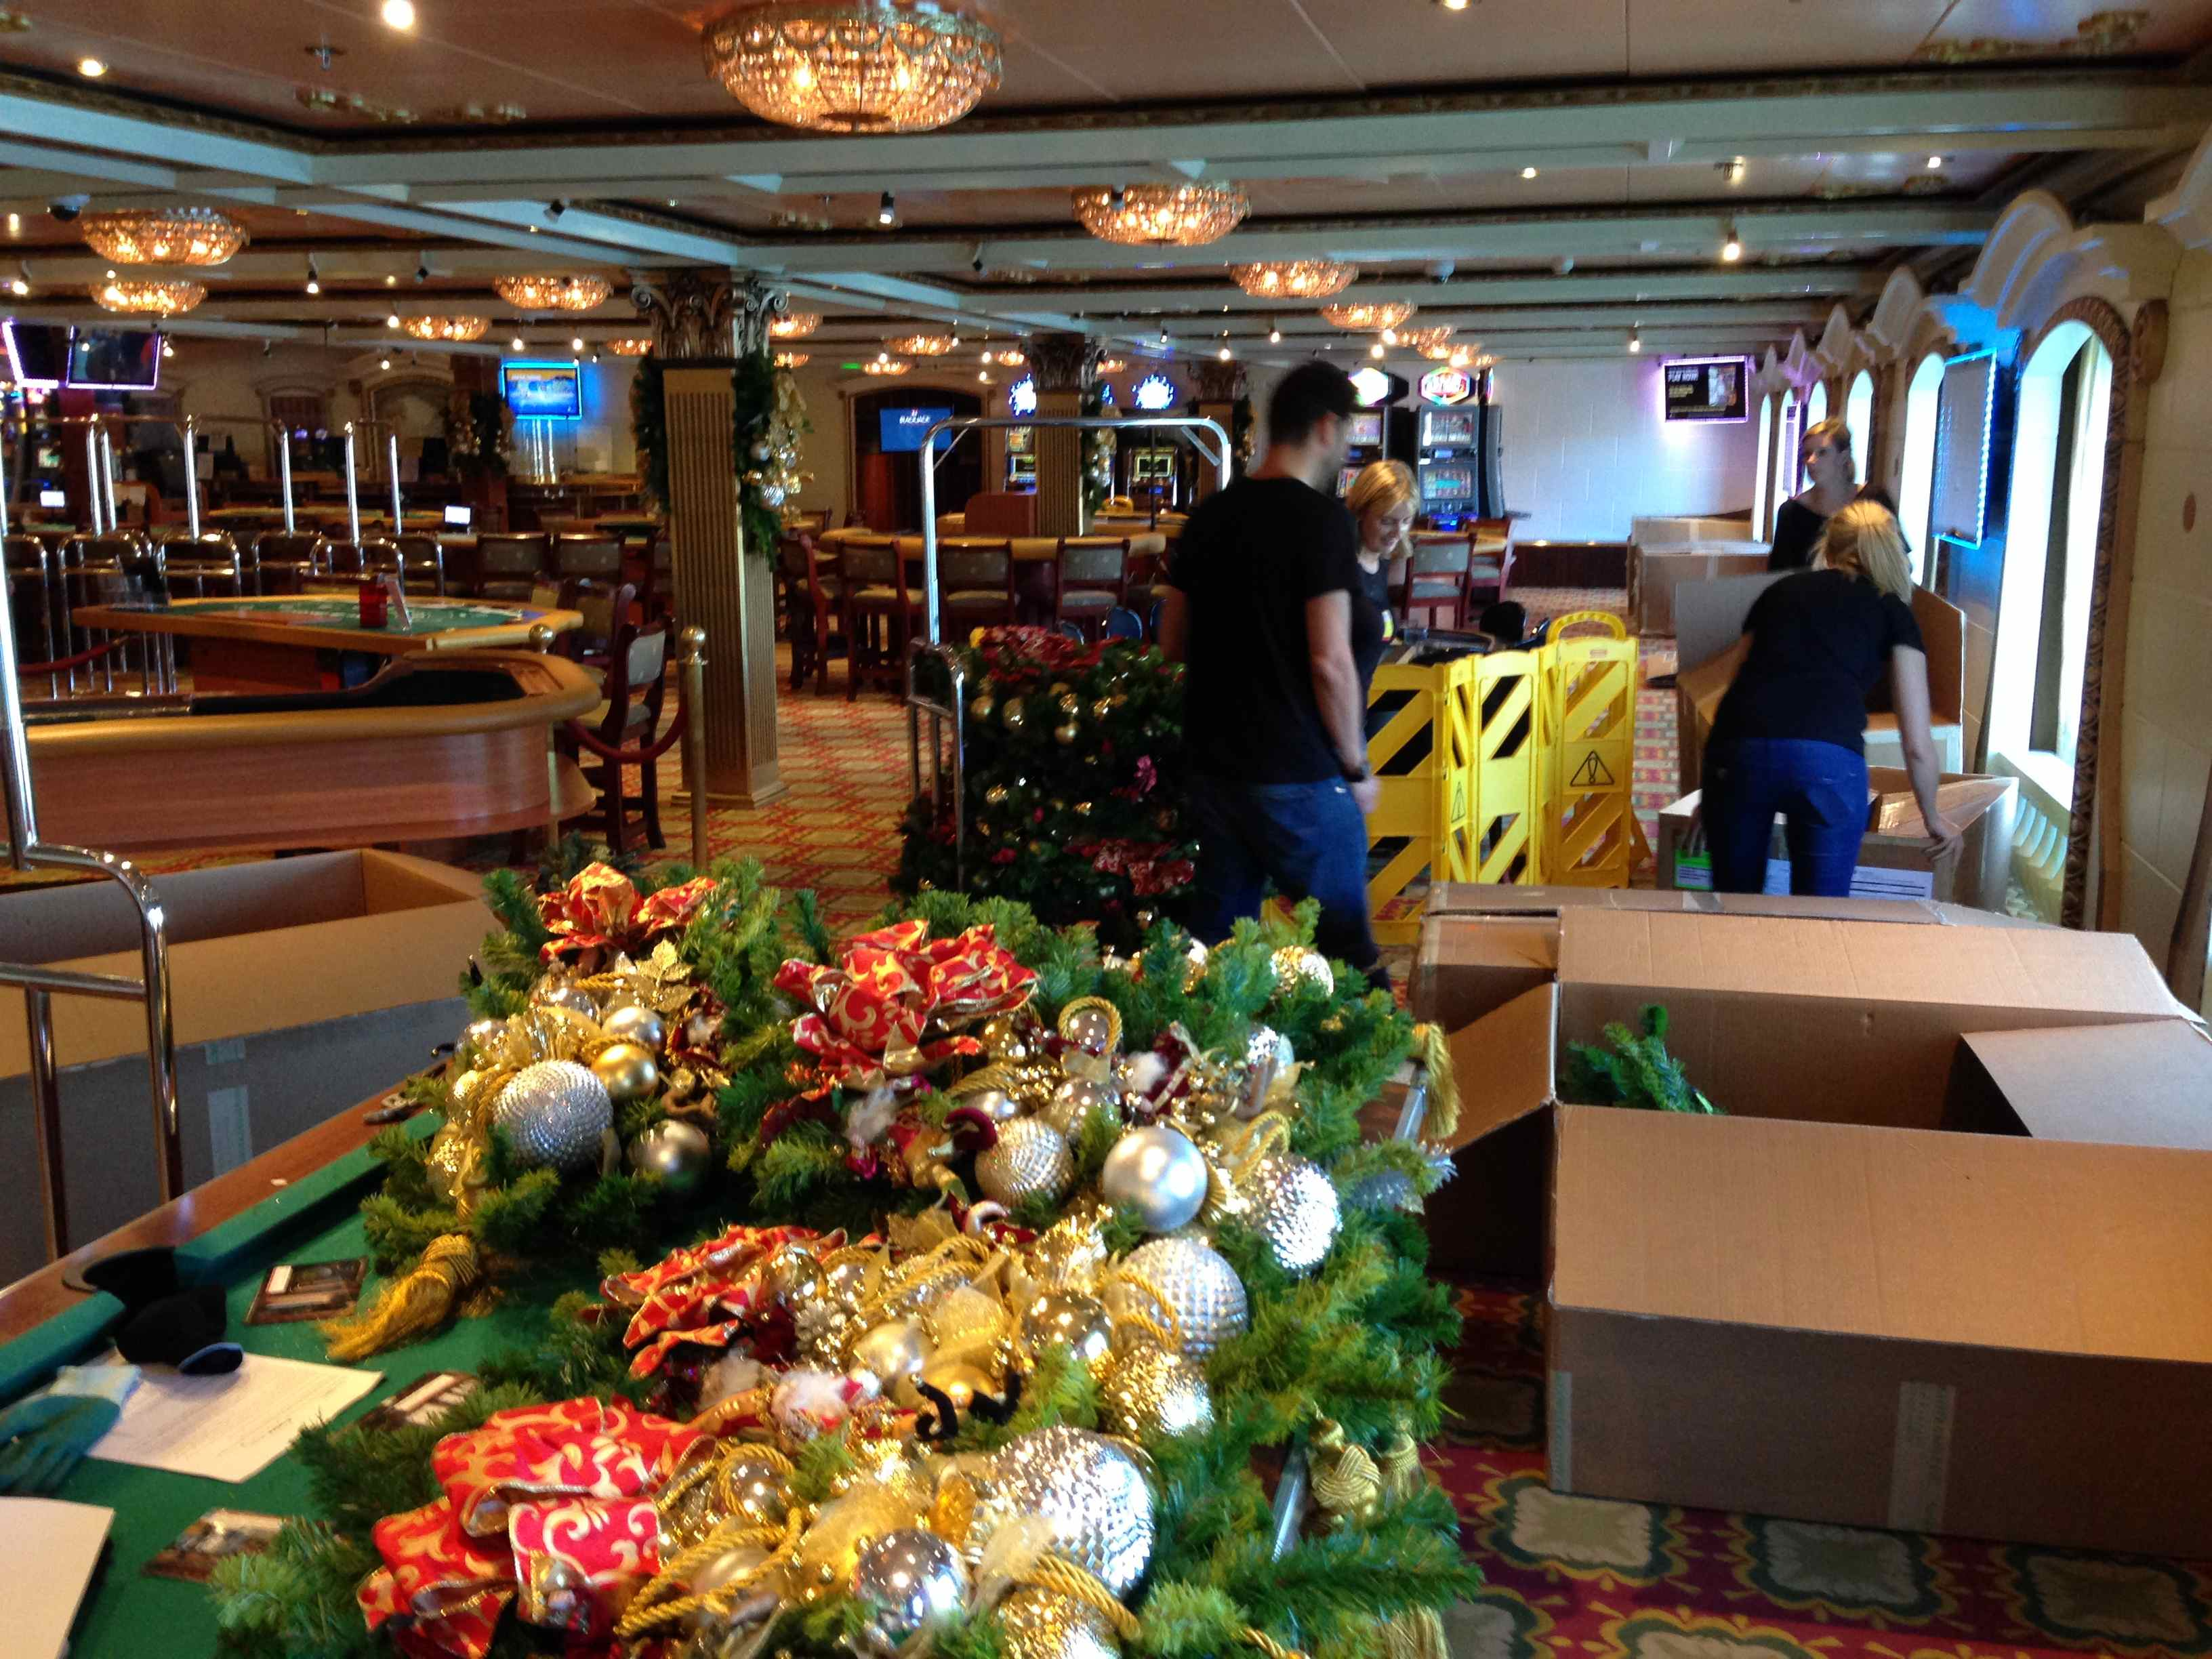 advertisements - When Do Cruise Ships Decorated For Christmas